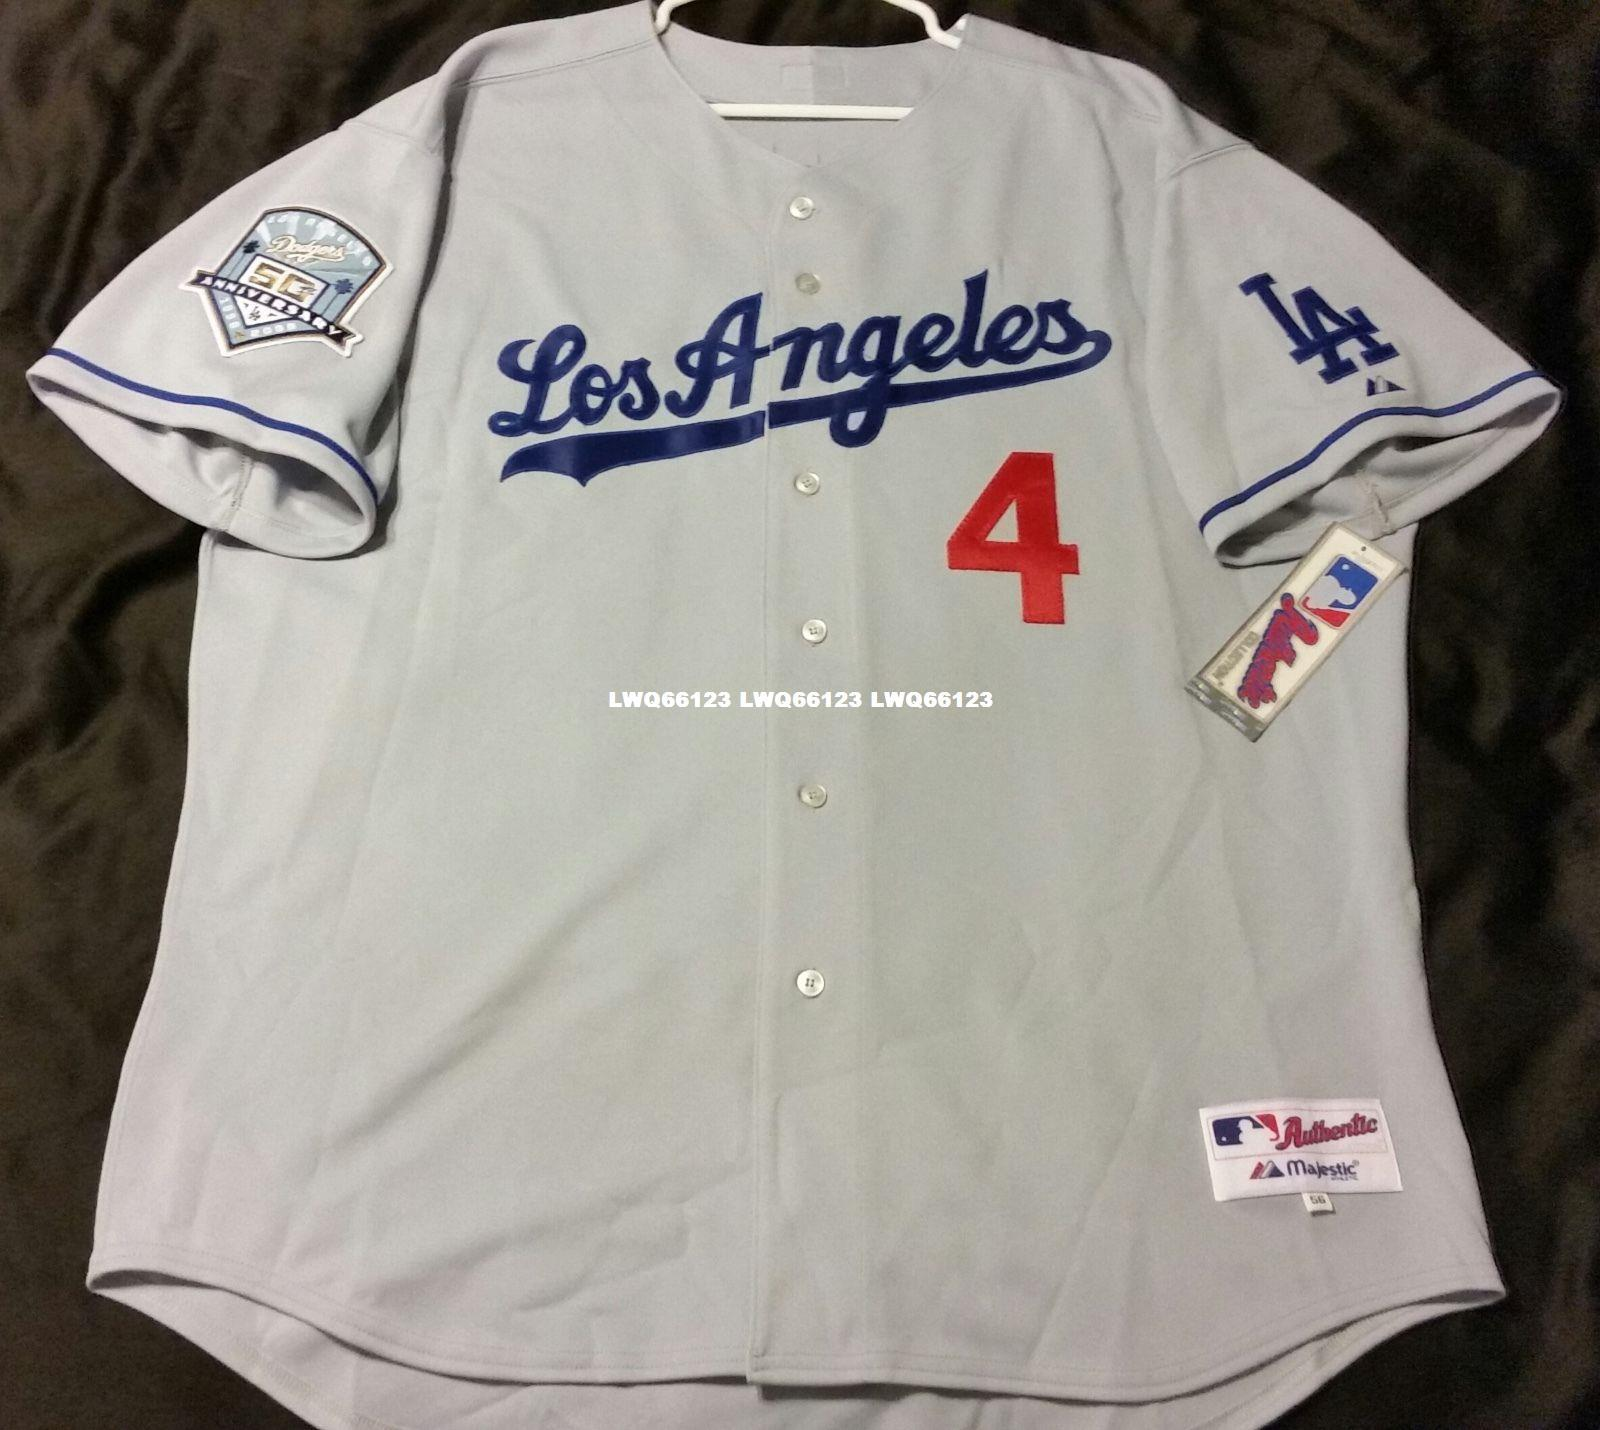 2018 Cheap Wholesale Los Angeles Duke Snider Jersey Stitched Customize Any  Number Name Men Women Youth Baseball Jersey From Lwq66123 1735a019ce0